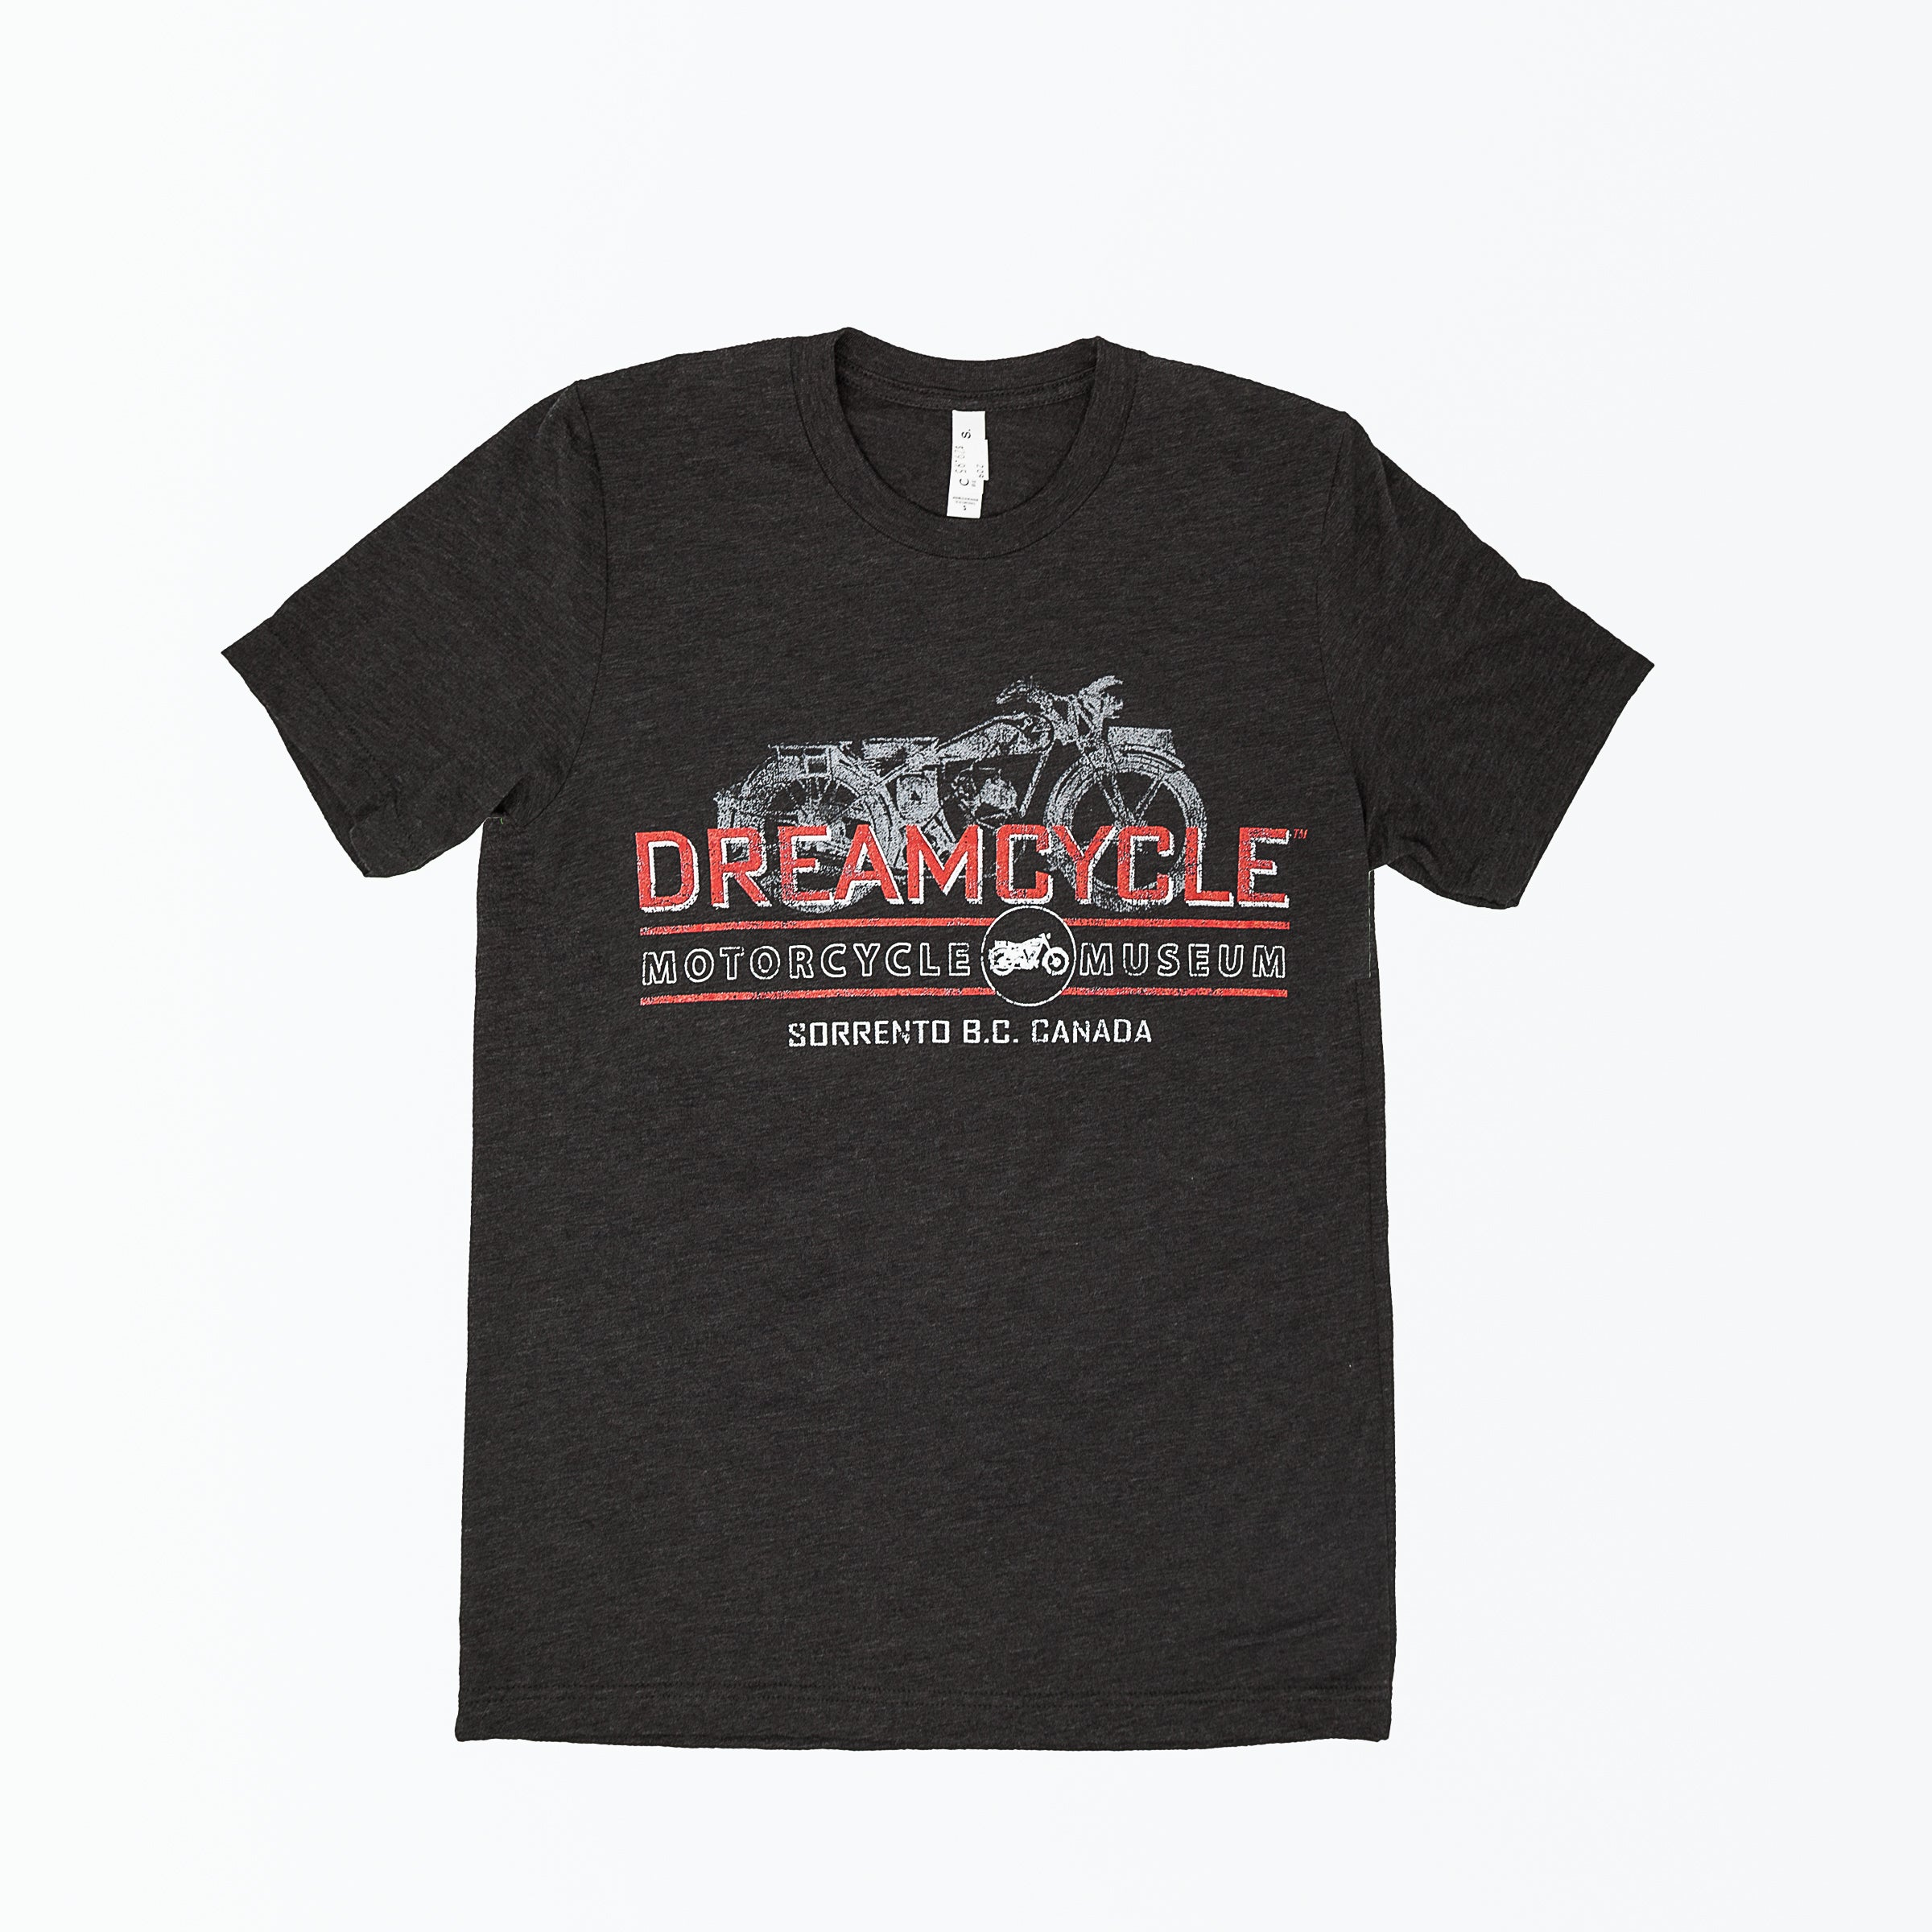 Dreamcycle Motorcycle Museum | Dreamchycle tshirt with motorcycle on white background